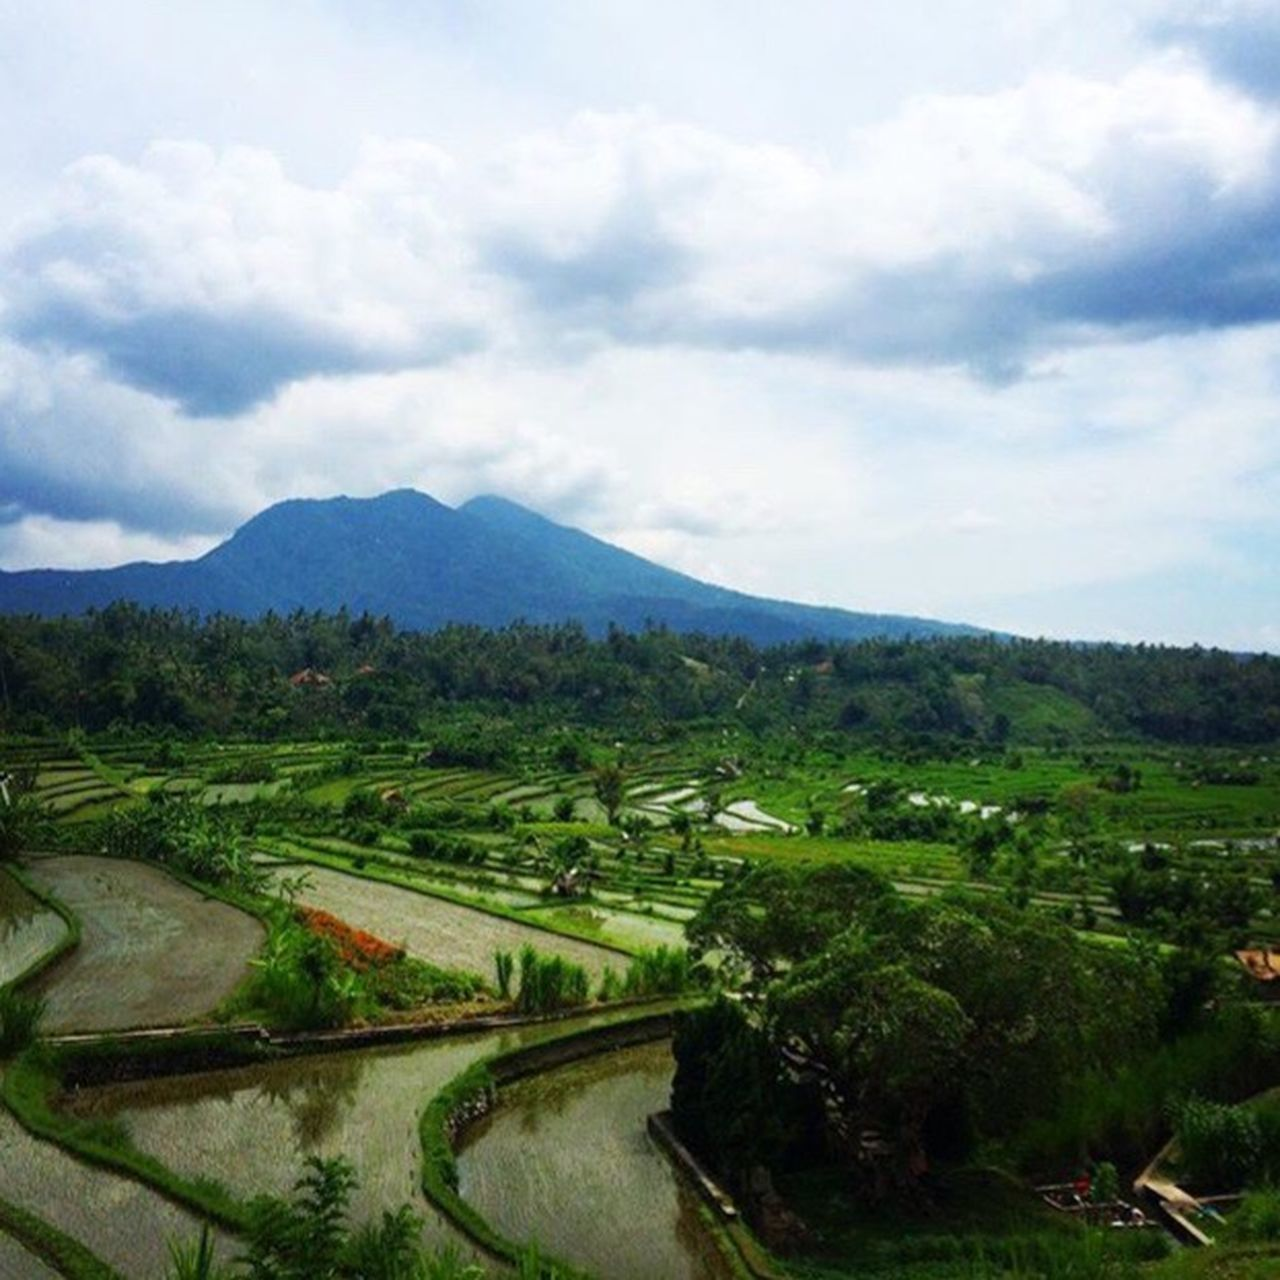 Rice Paddies and Volcanos🌋 Landscape Road Tranquil Scene Transportation Sky Scenics Tranquility Non-urban Scene Cloud - Sky Cloud Mountain Beauty In Nature Travel Destinations Day Nature Countryside Outdoors Tourism Majestic Growth Bali Tulamben